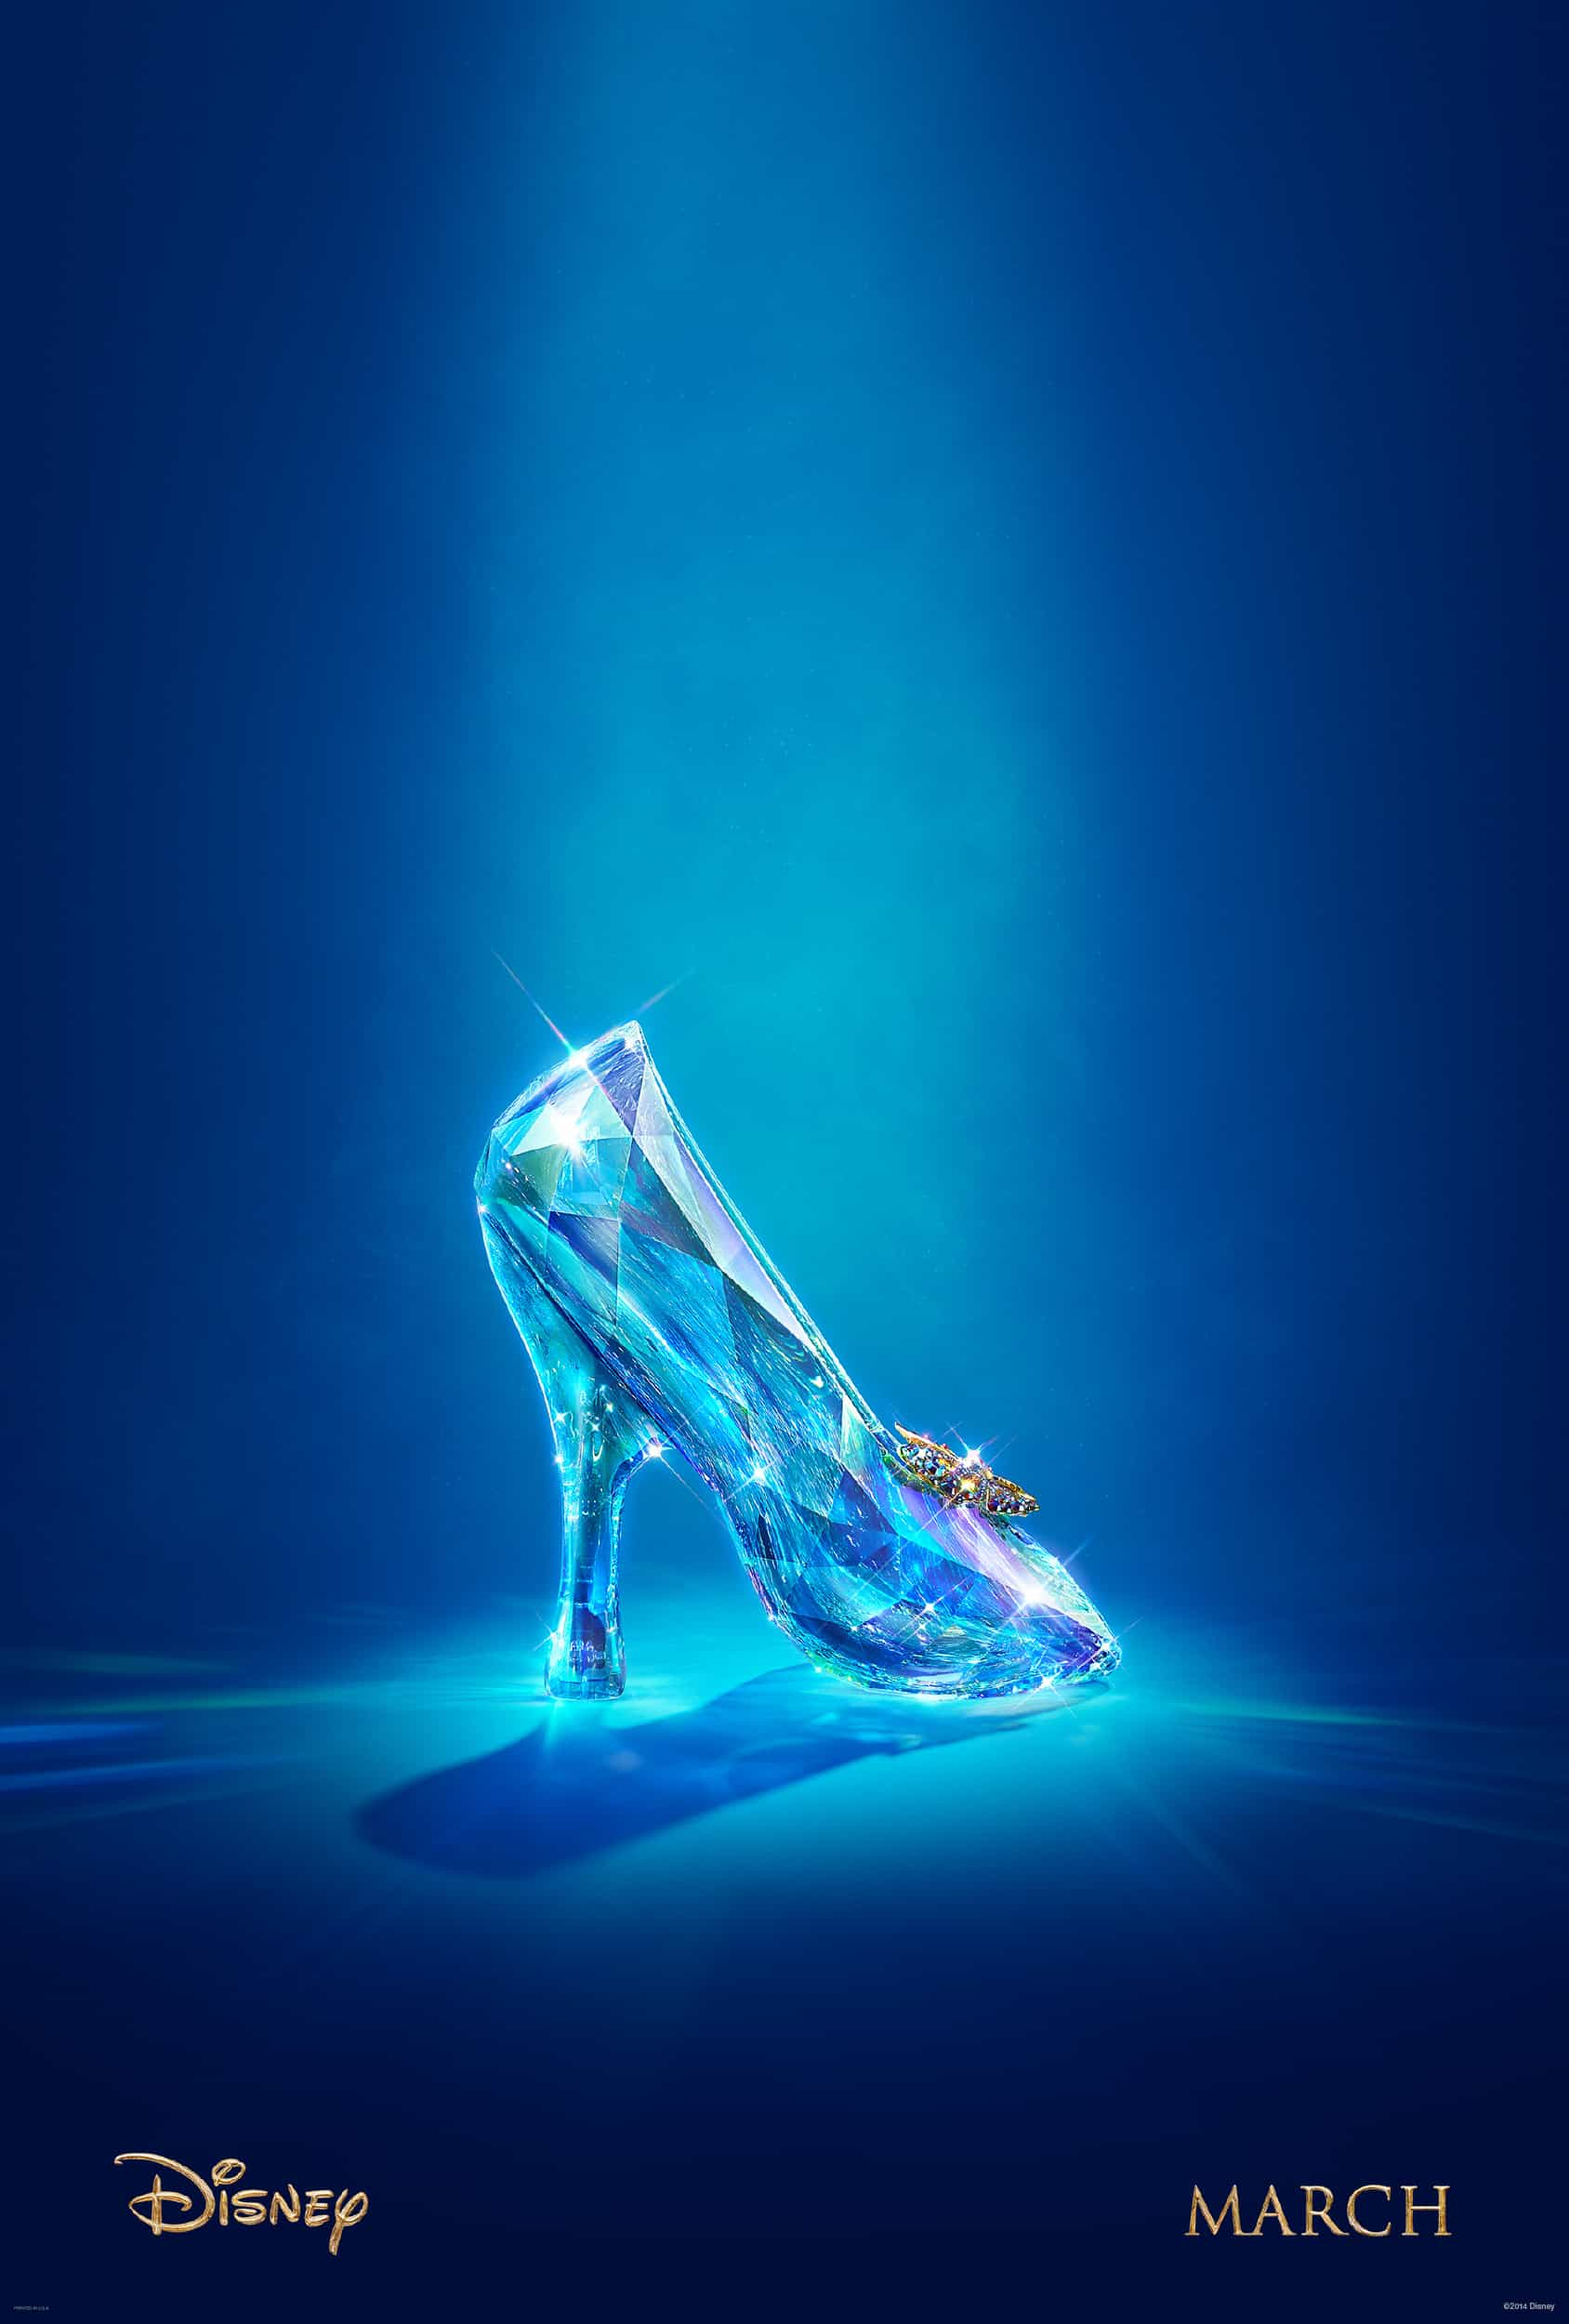 Disney's Cinderella Live Action Movie Poster and Teaser